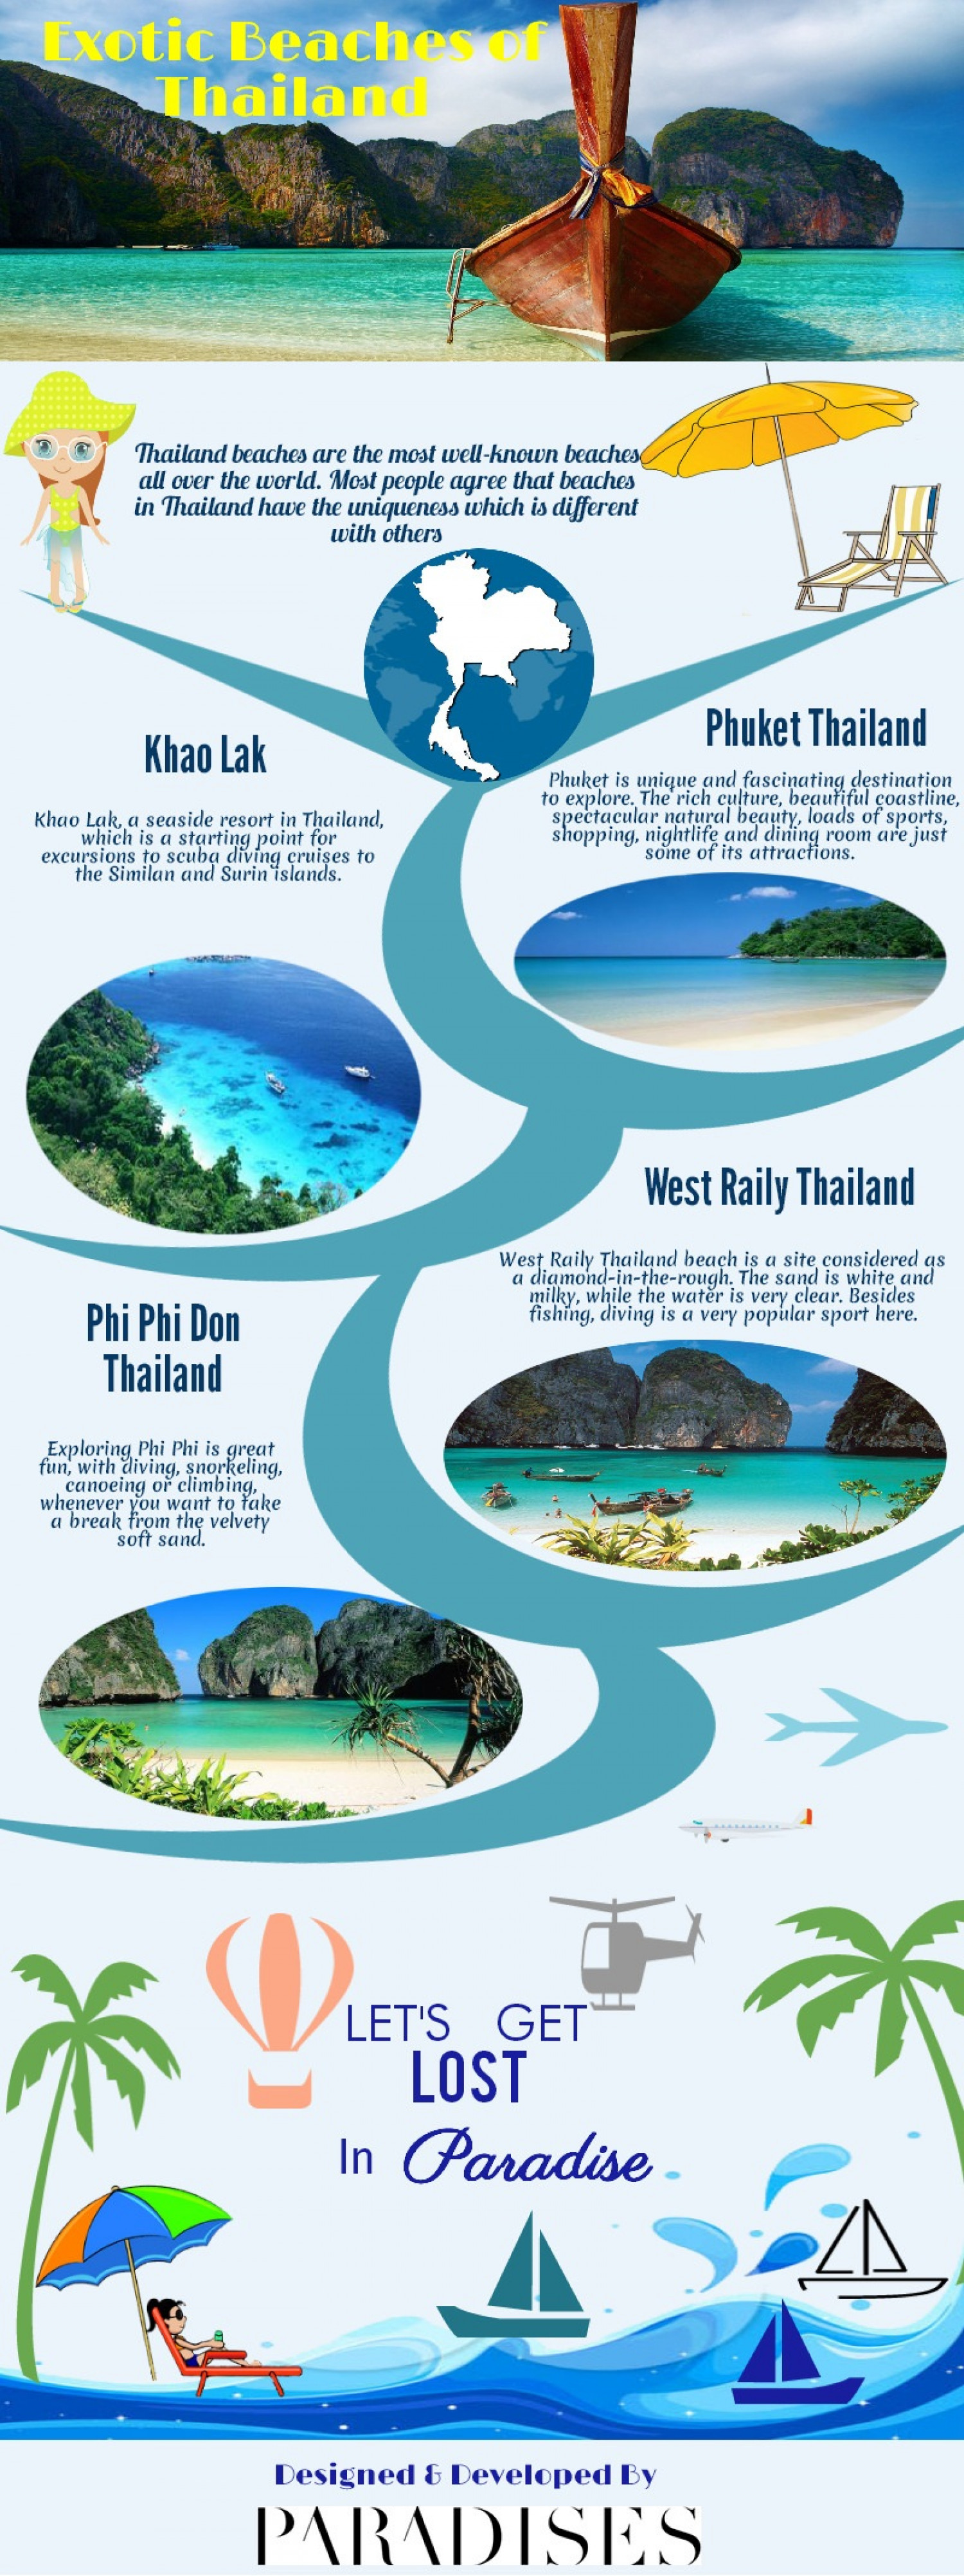 4 Most Beautiful Thailand Beaches Infographic